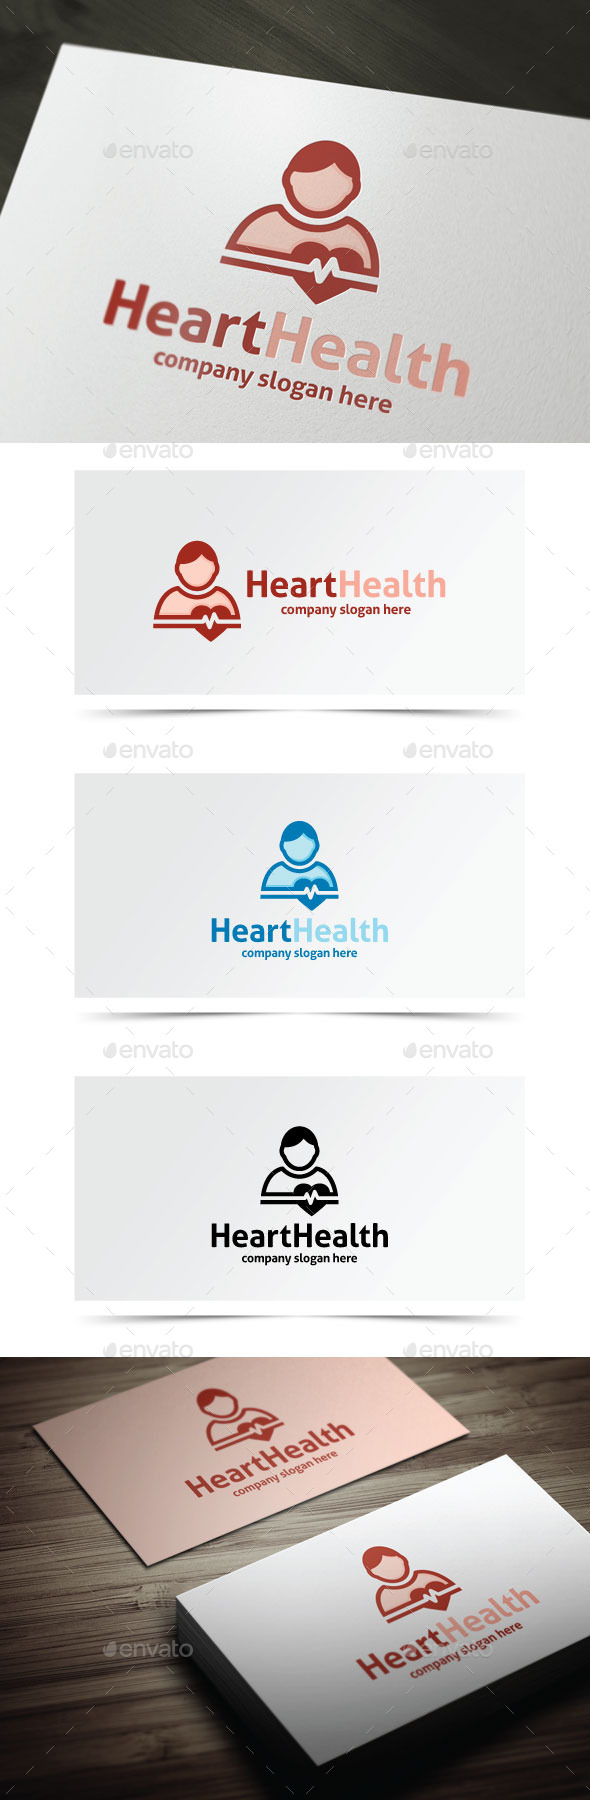 GraphicRiver Heart Health 9134565